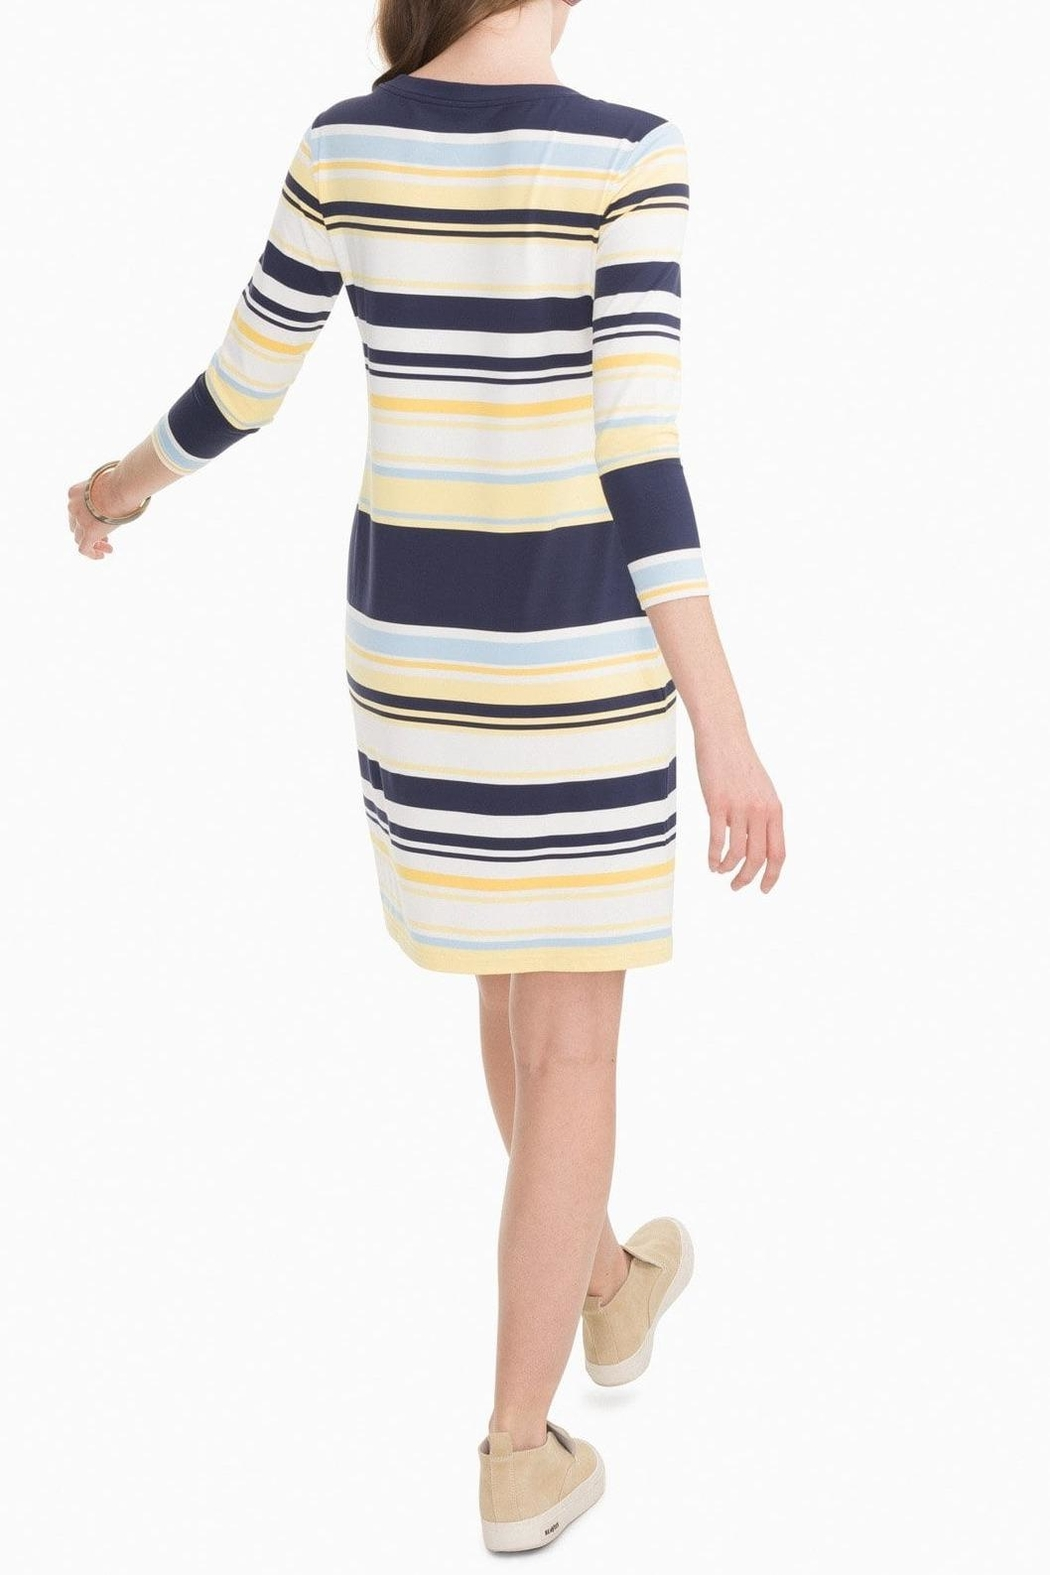 Southern Tide Camille Performance Dress - Front Full Image